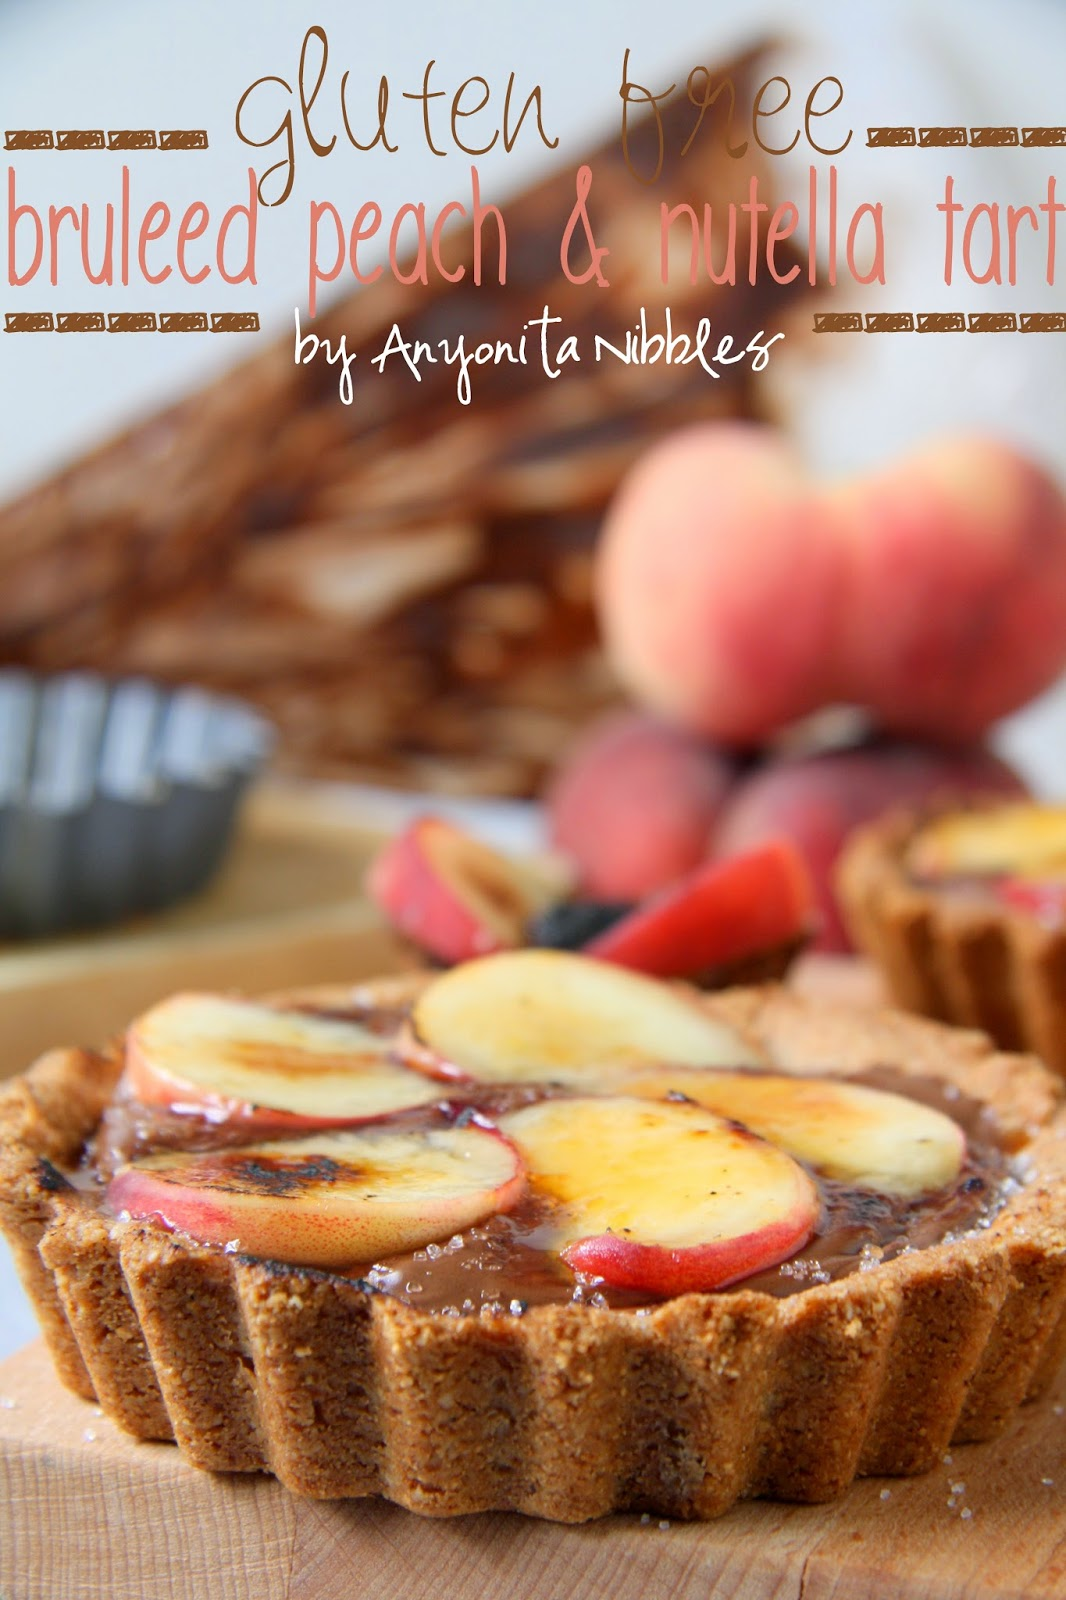 #glutenfree brûléed peach & #nutella tarts #paleo from Anyonita Nibbles